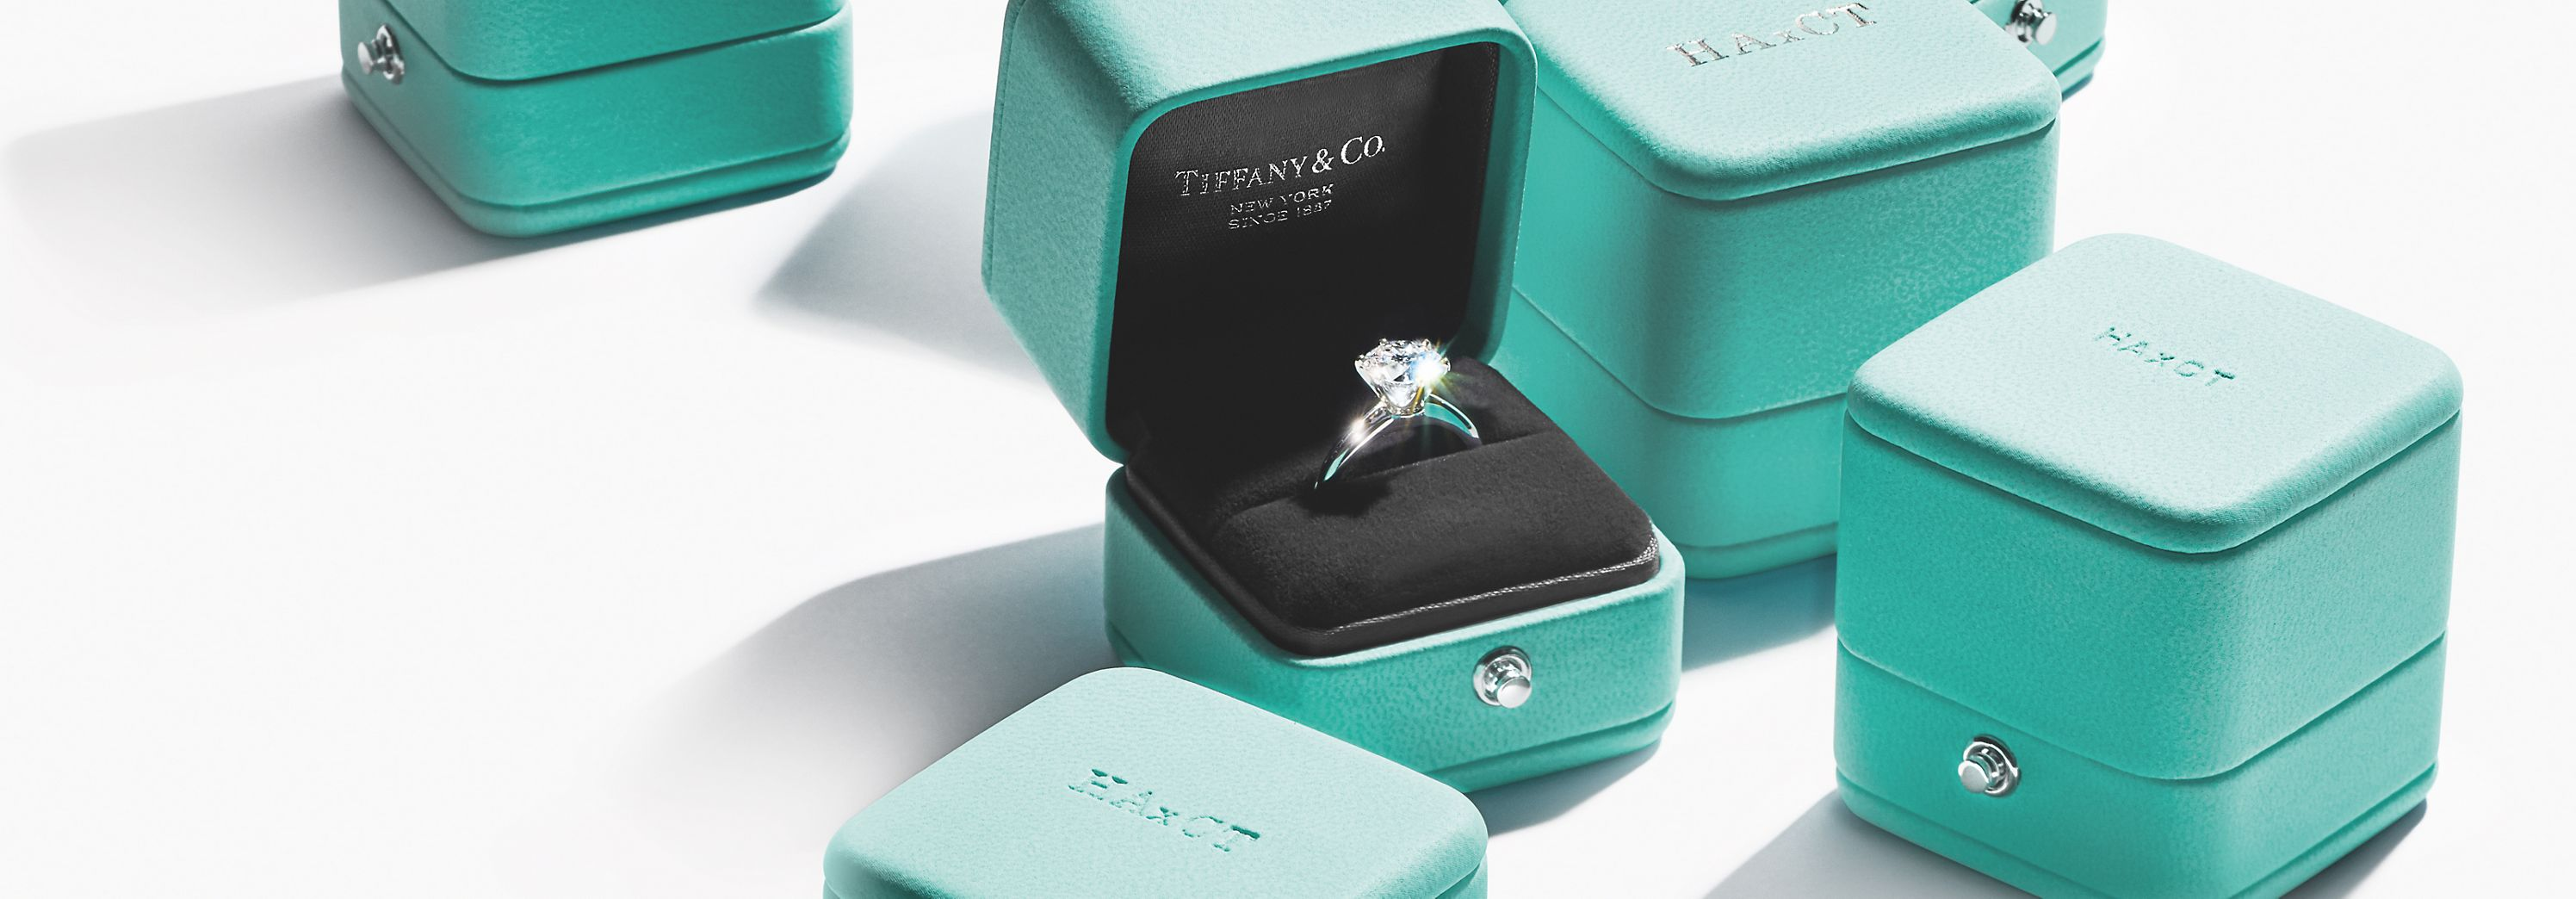 Ver anillos de compromiso de diamantes de Tiffany & Co.